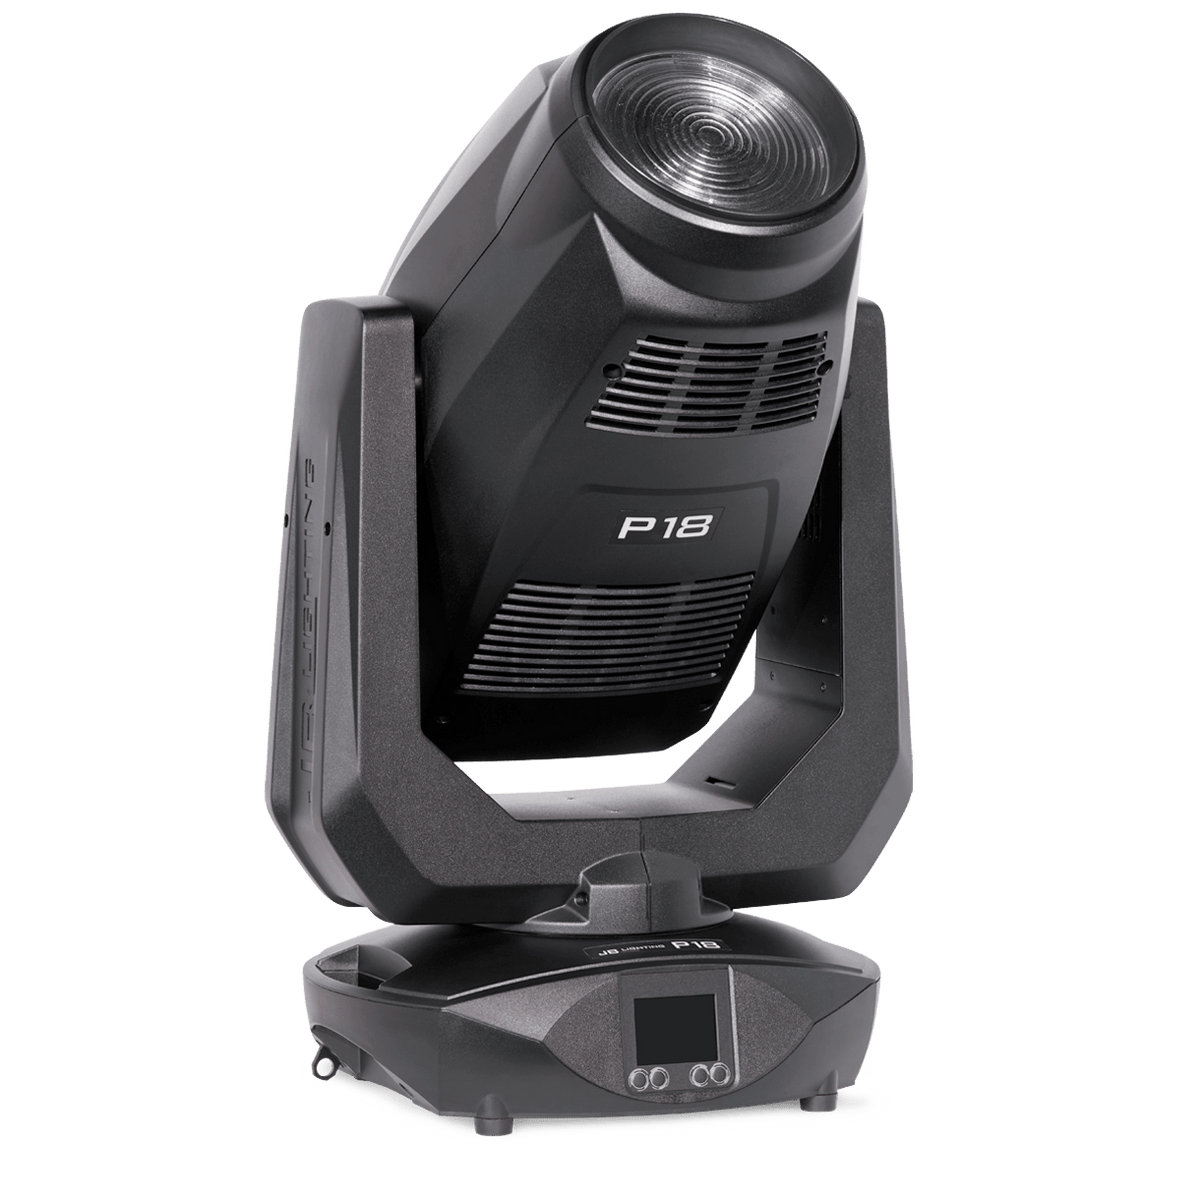 JB-Lighting P18 LED Wash Moving Head 1000w